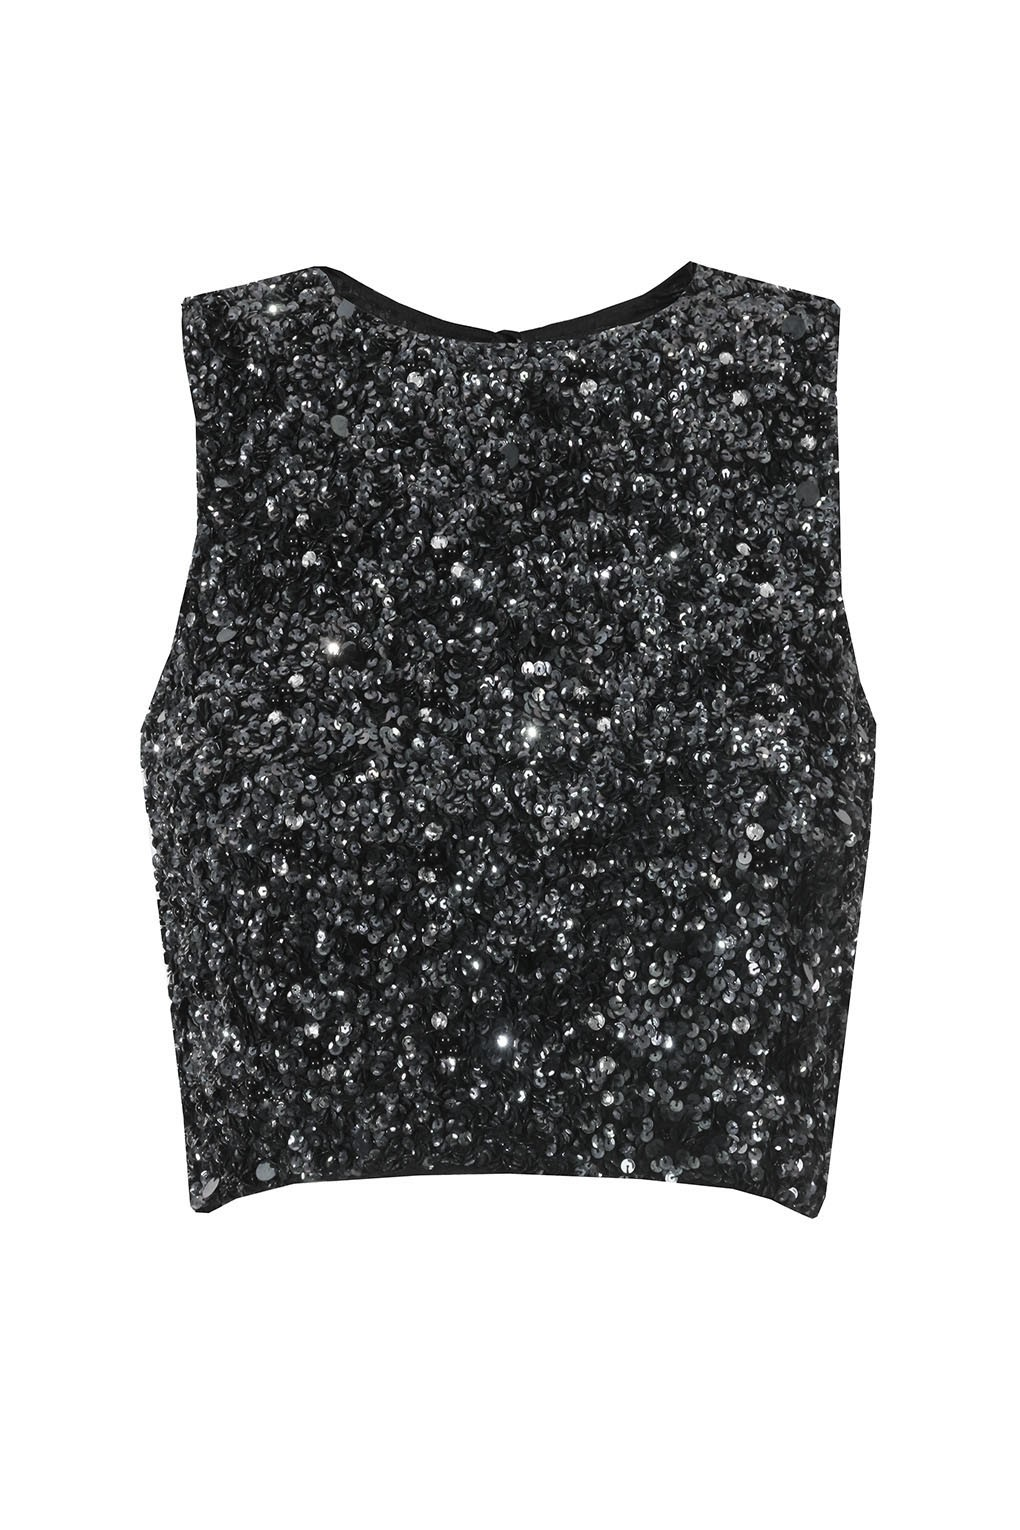 Lace Amp Beads Picasso Black Sequin Top Lace Amp Beads Tops